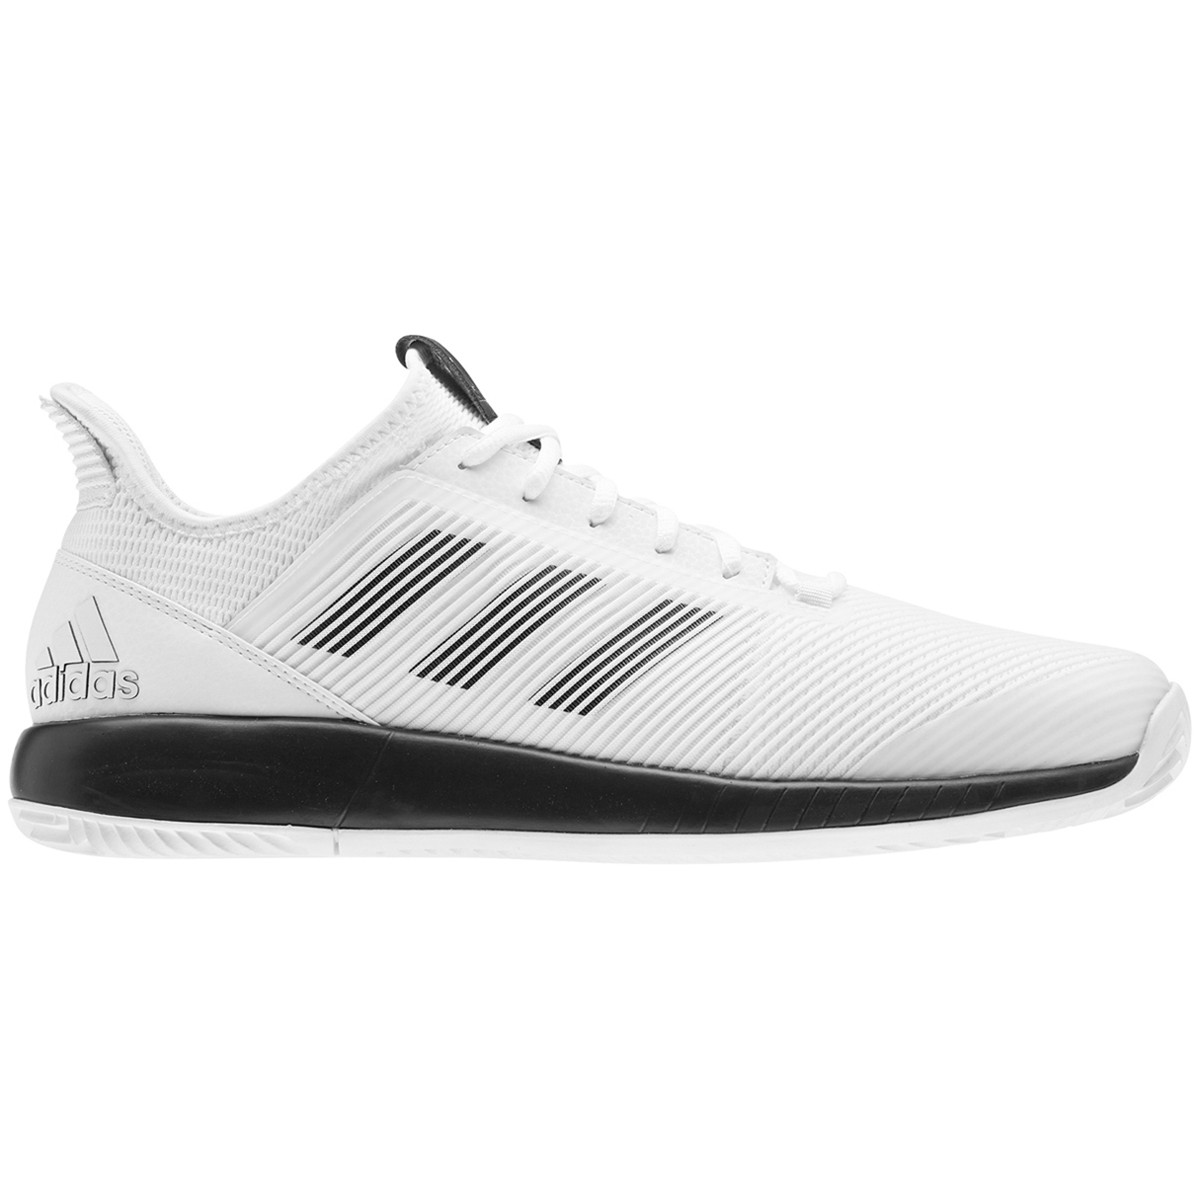 CHAUSSURES ADIDAS DEFIANT BOUNCE 2 TERRE BATTUE